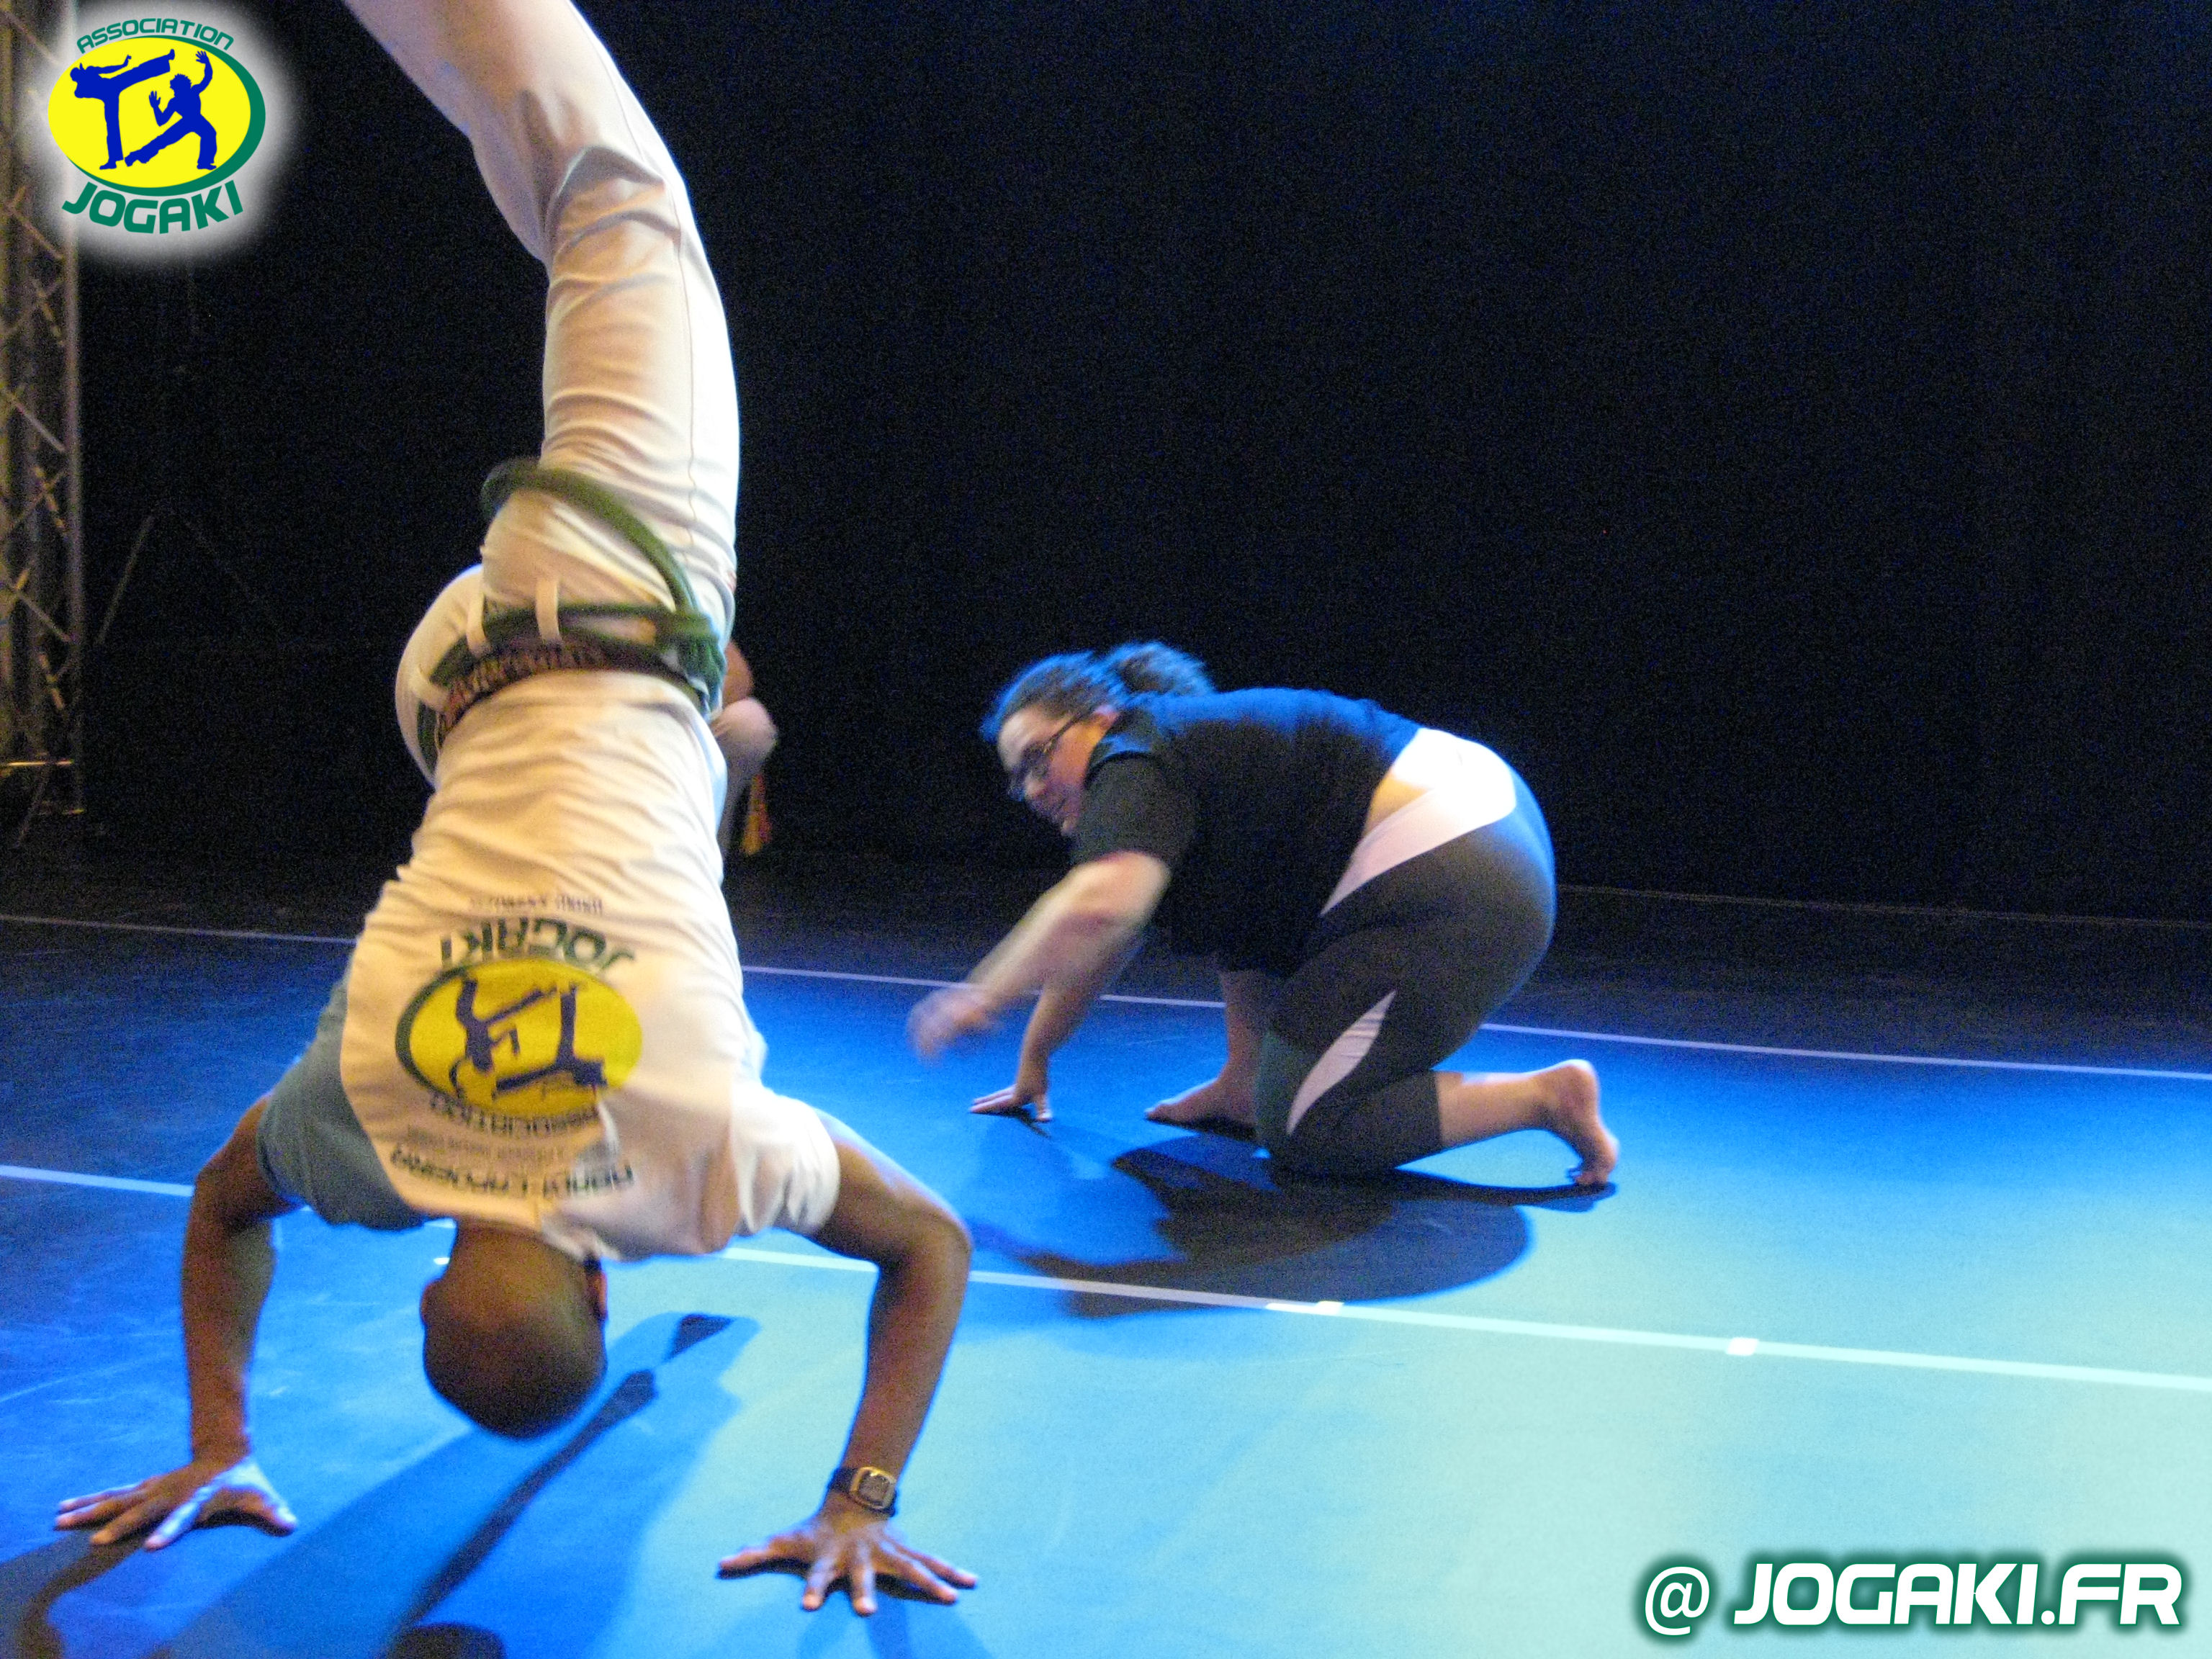 spectacle-capoeira-paris-danseurs-evenement-happening-bresil-289